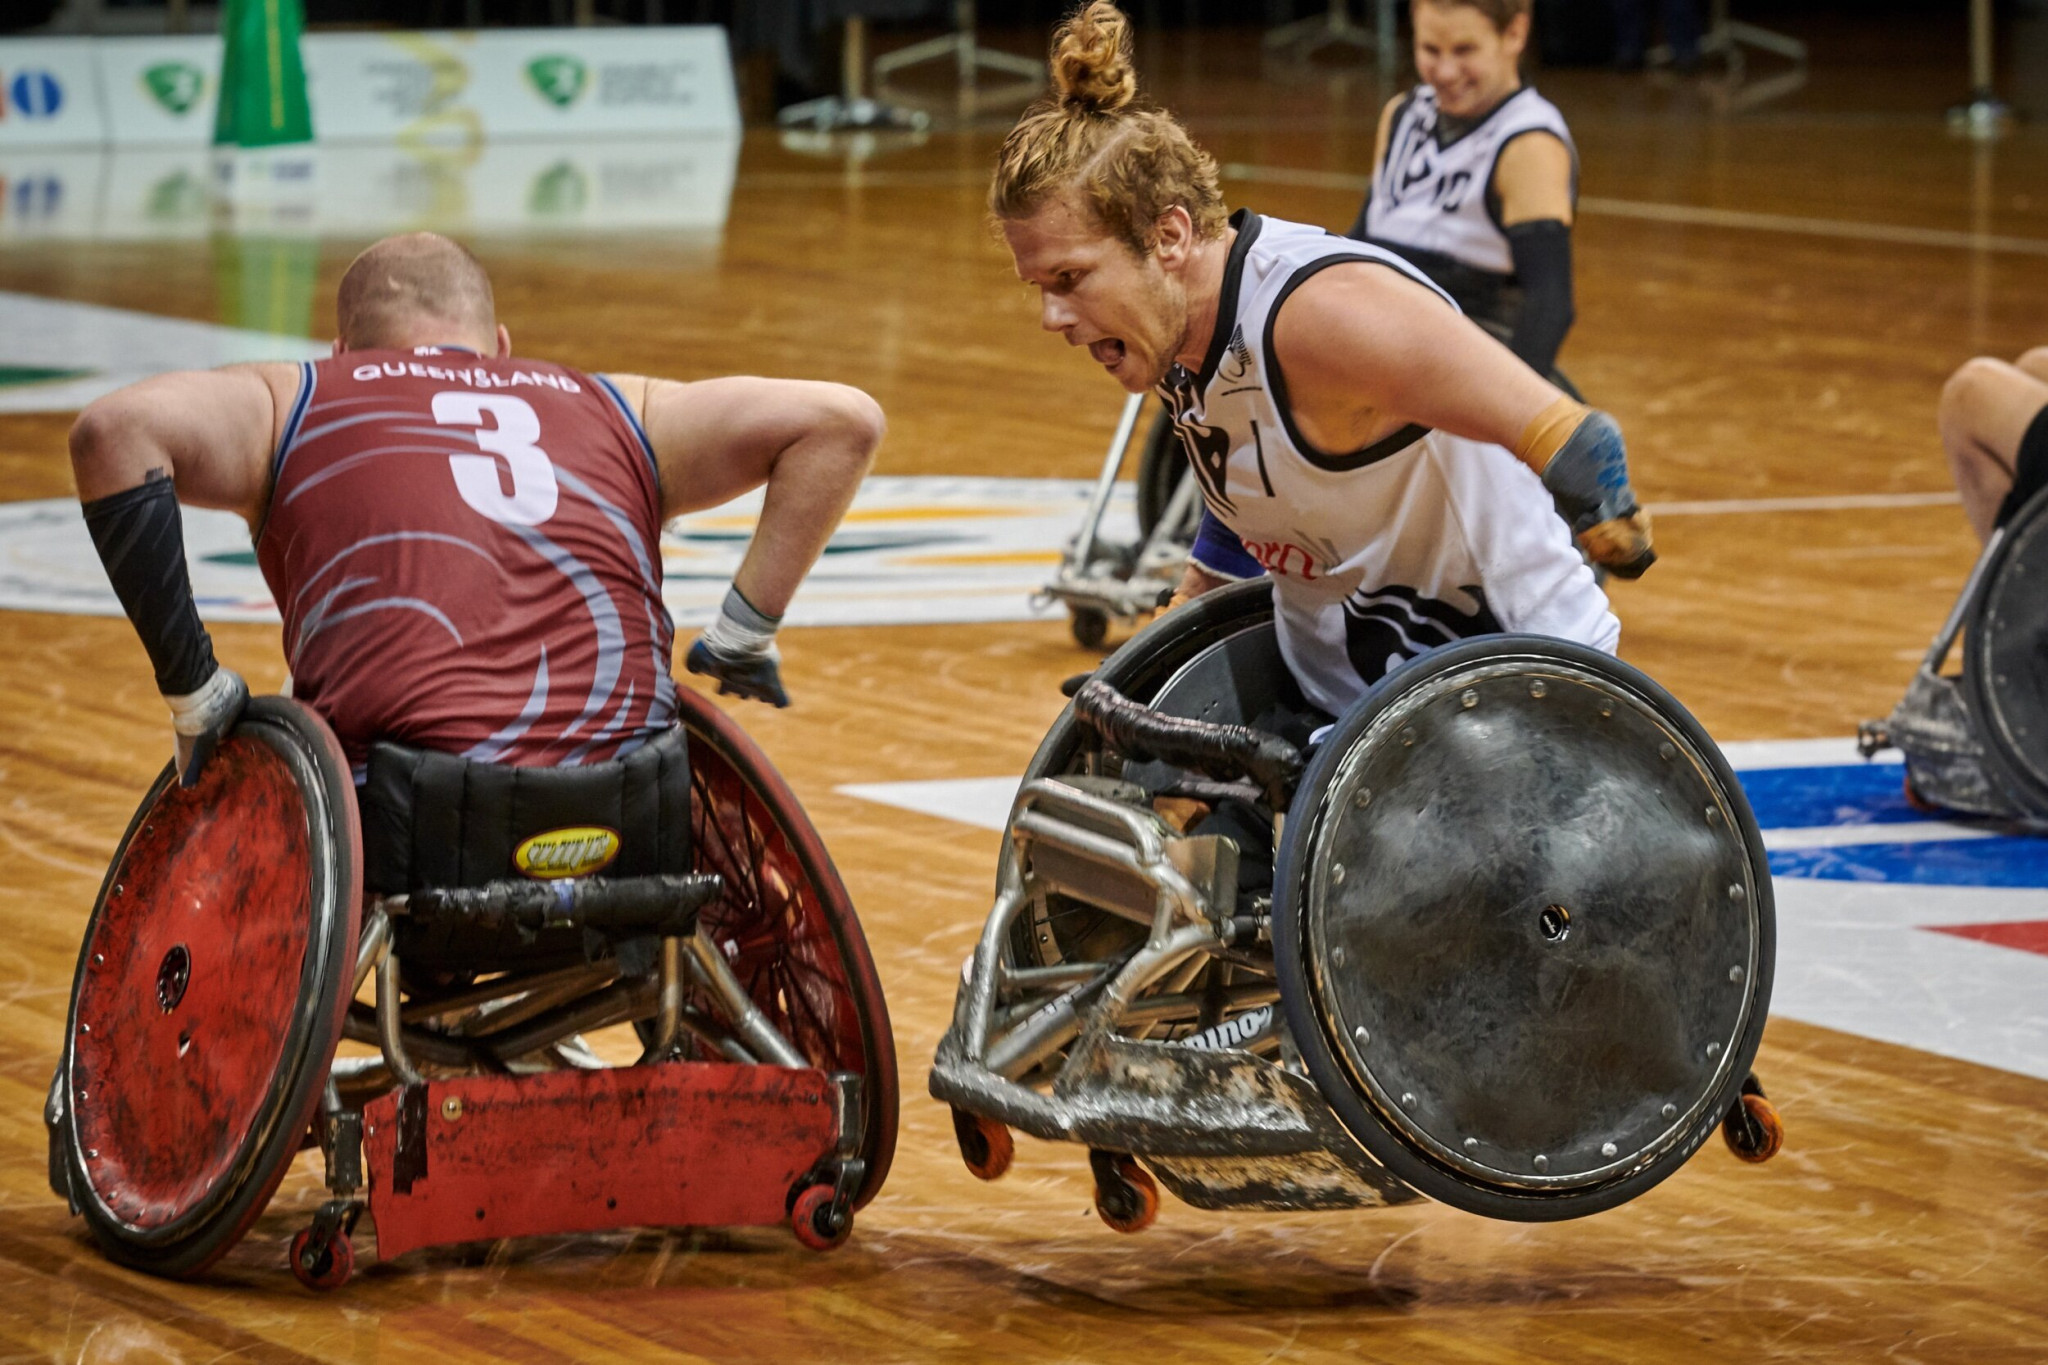 Wheelchair Rugby Australia has announced the launch of a new recruitment plan ©Wheelchair Rugby Australia